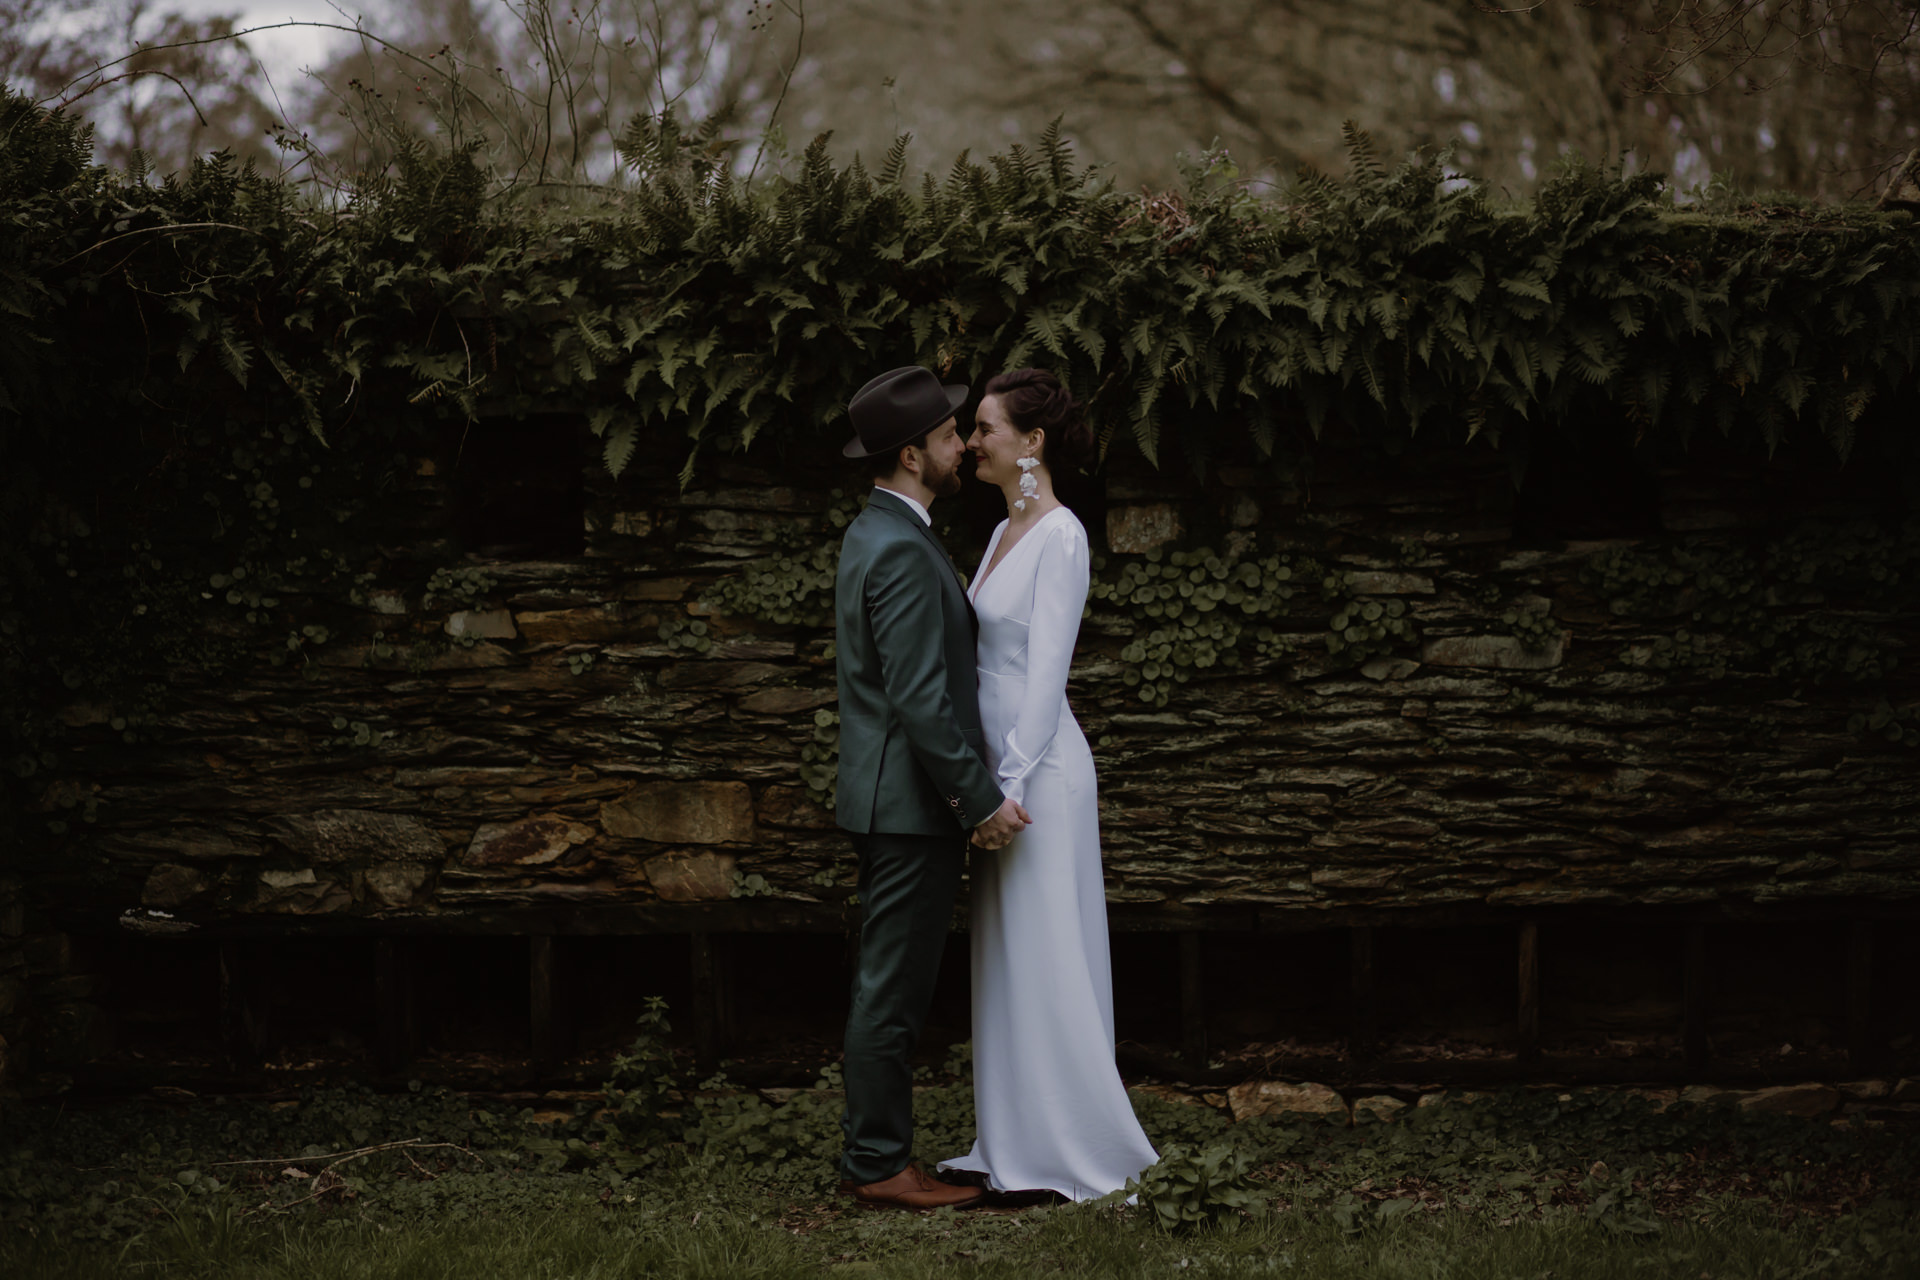 mariage hivernal amour tendresse bisous